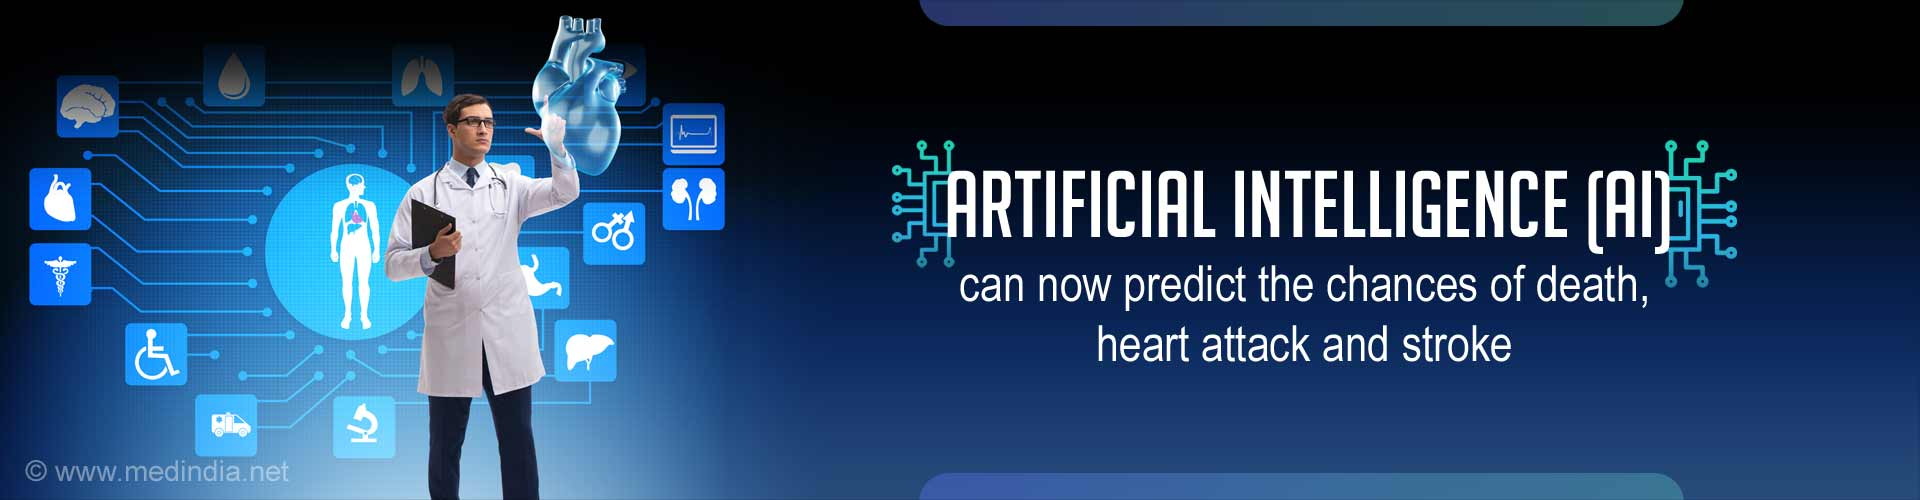 Artificial Intelligence Helps Predict Heart Attack and Stroke